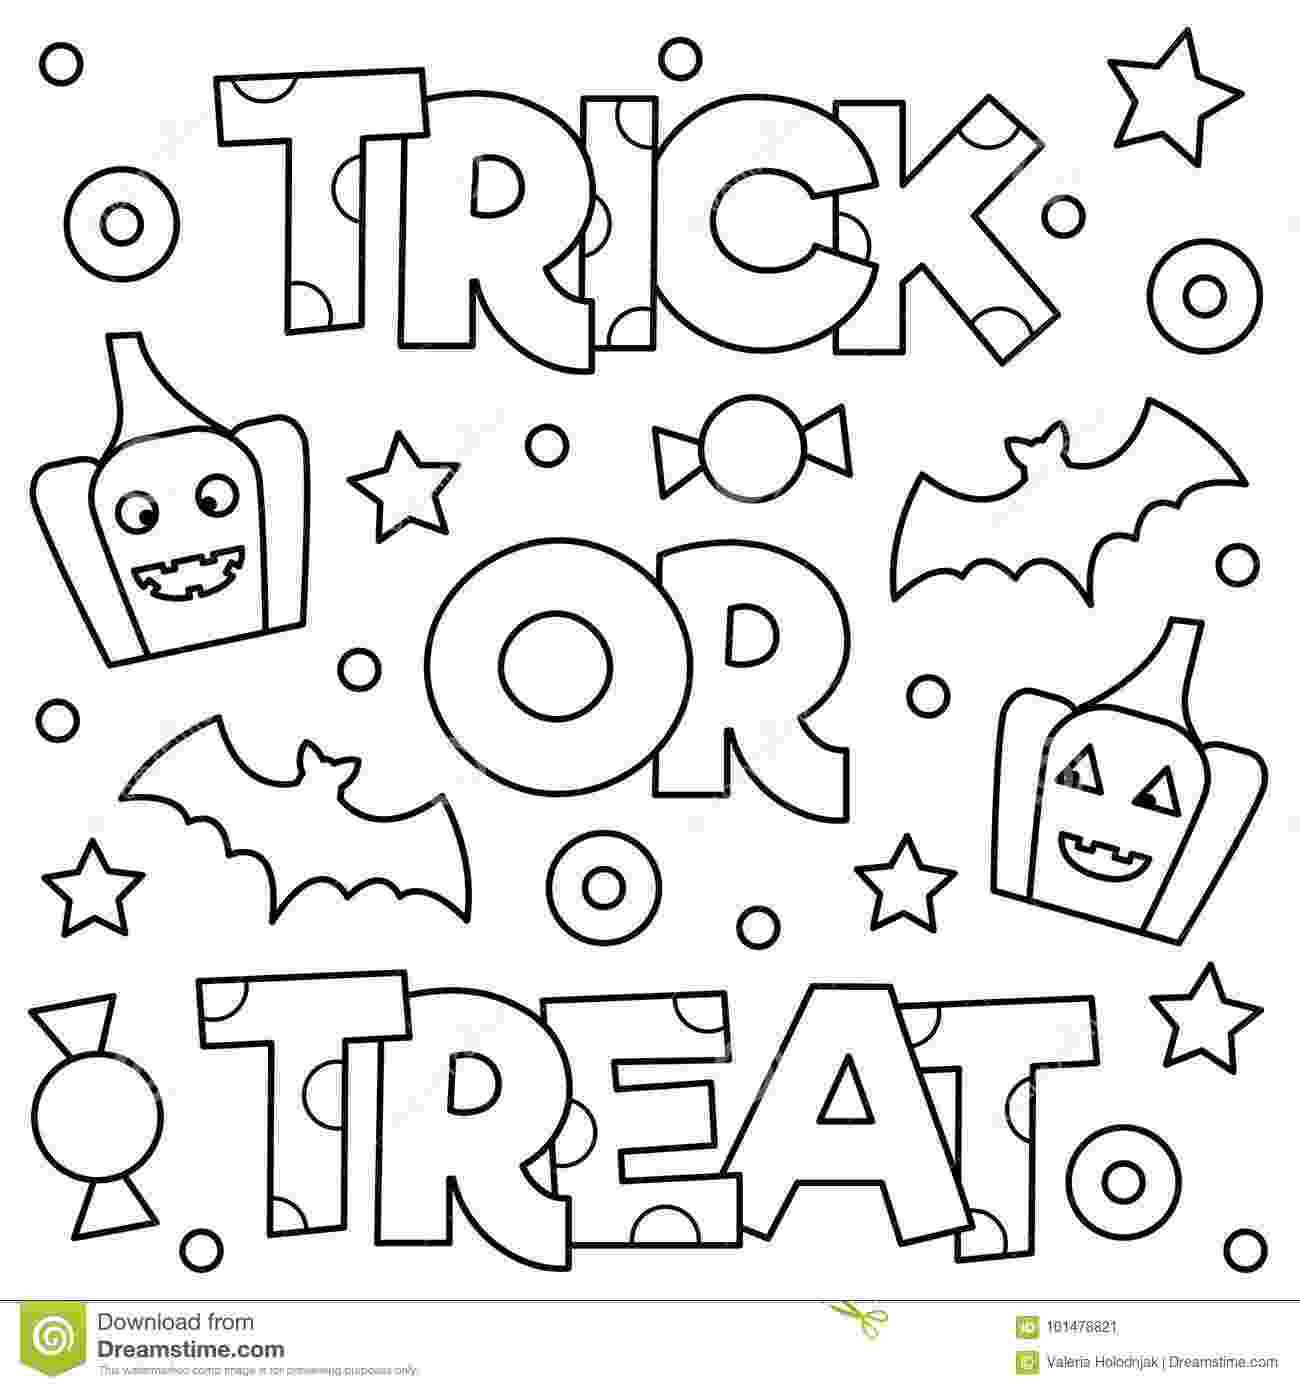 halloween coloring pages trick or treat halloween coloring pages trick or treat coloring pages treat or pages trick halloween coloring